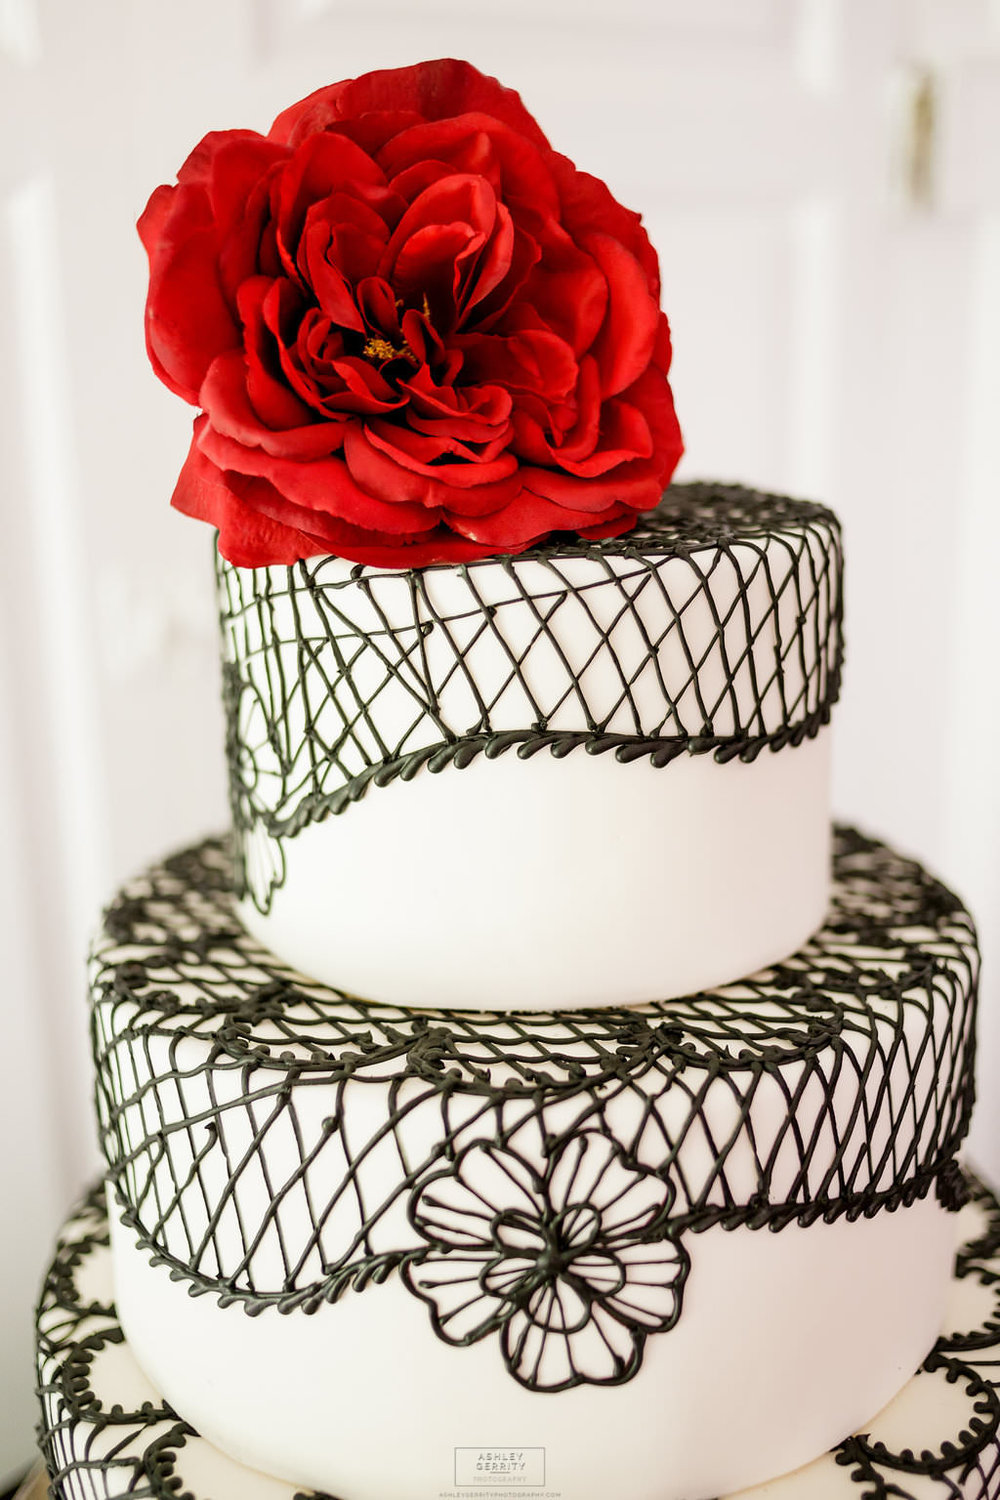 32 Spanish Rose Wedding Cake Black Lace Red Rose Chester County Weddings.jpg